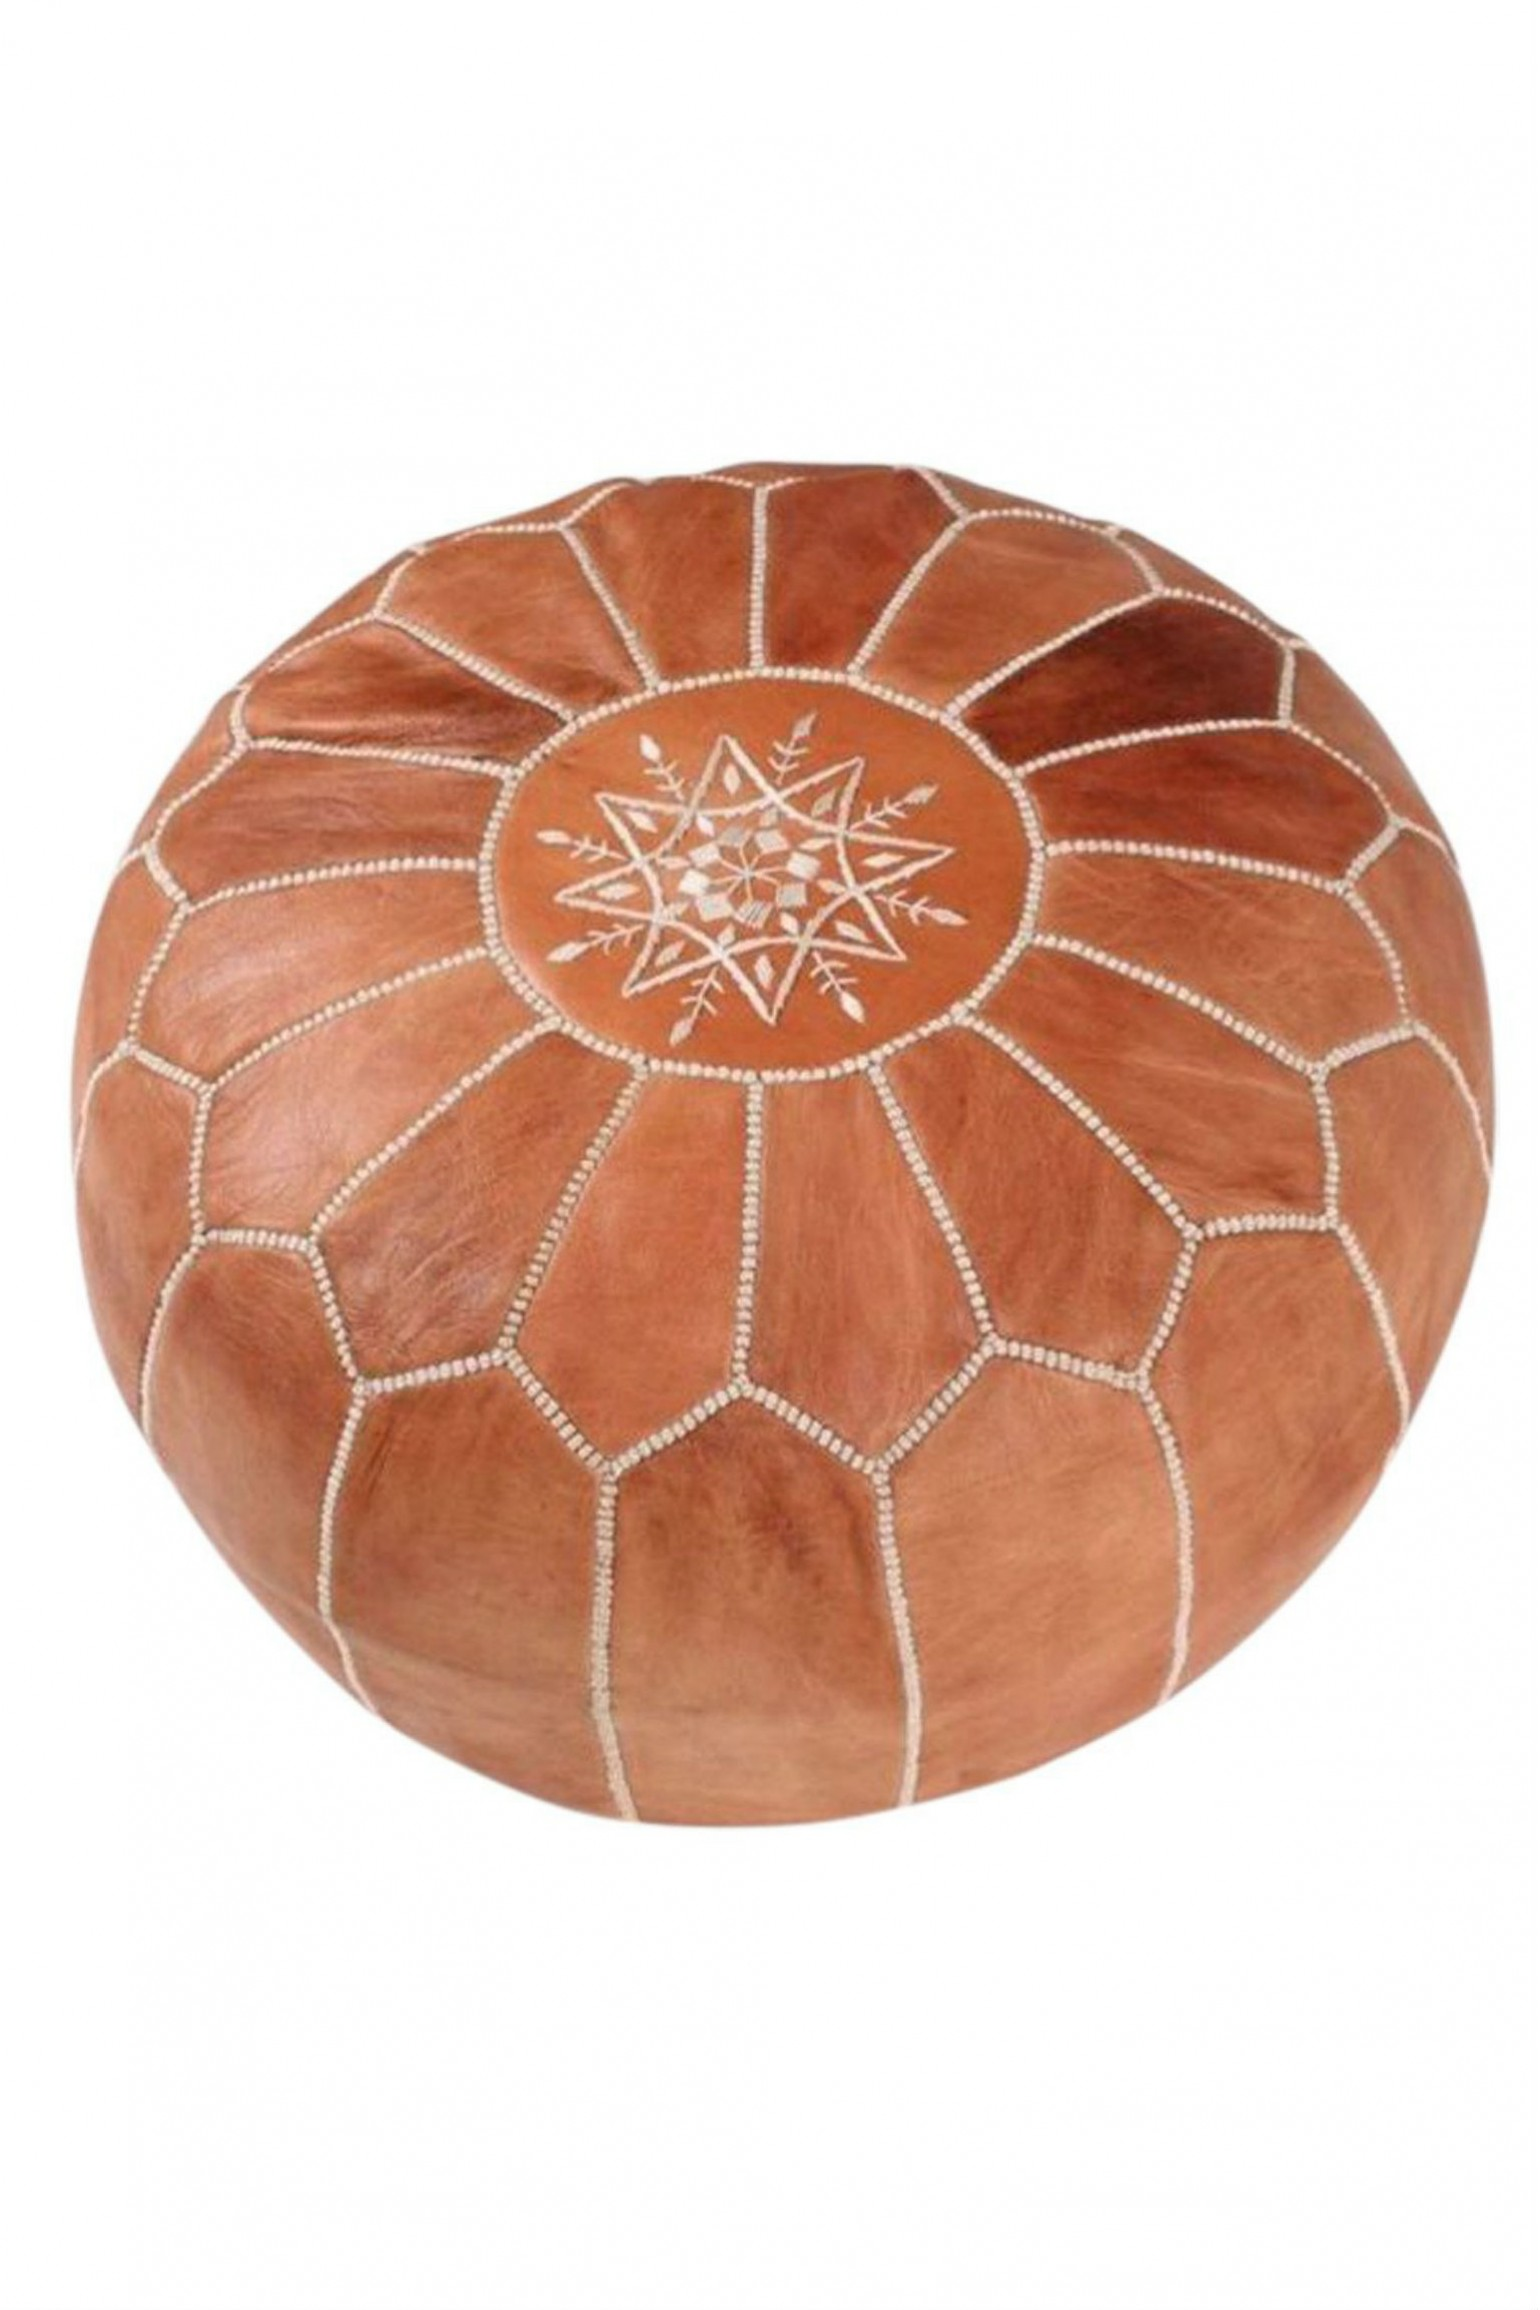 Maison and Maison Moroccan Leather Pouffe